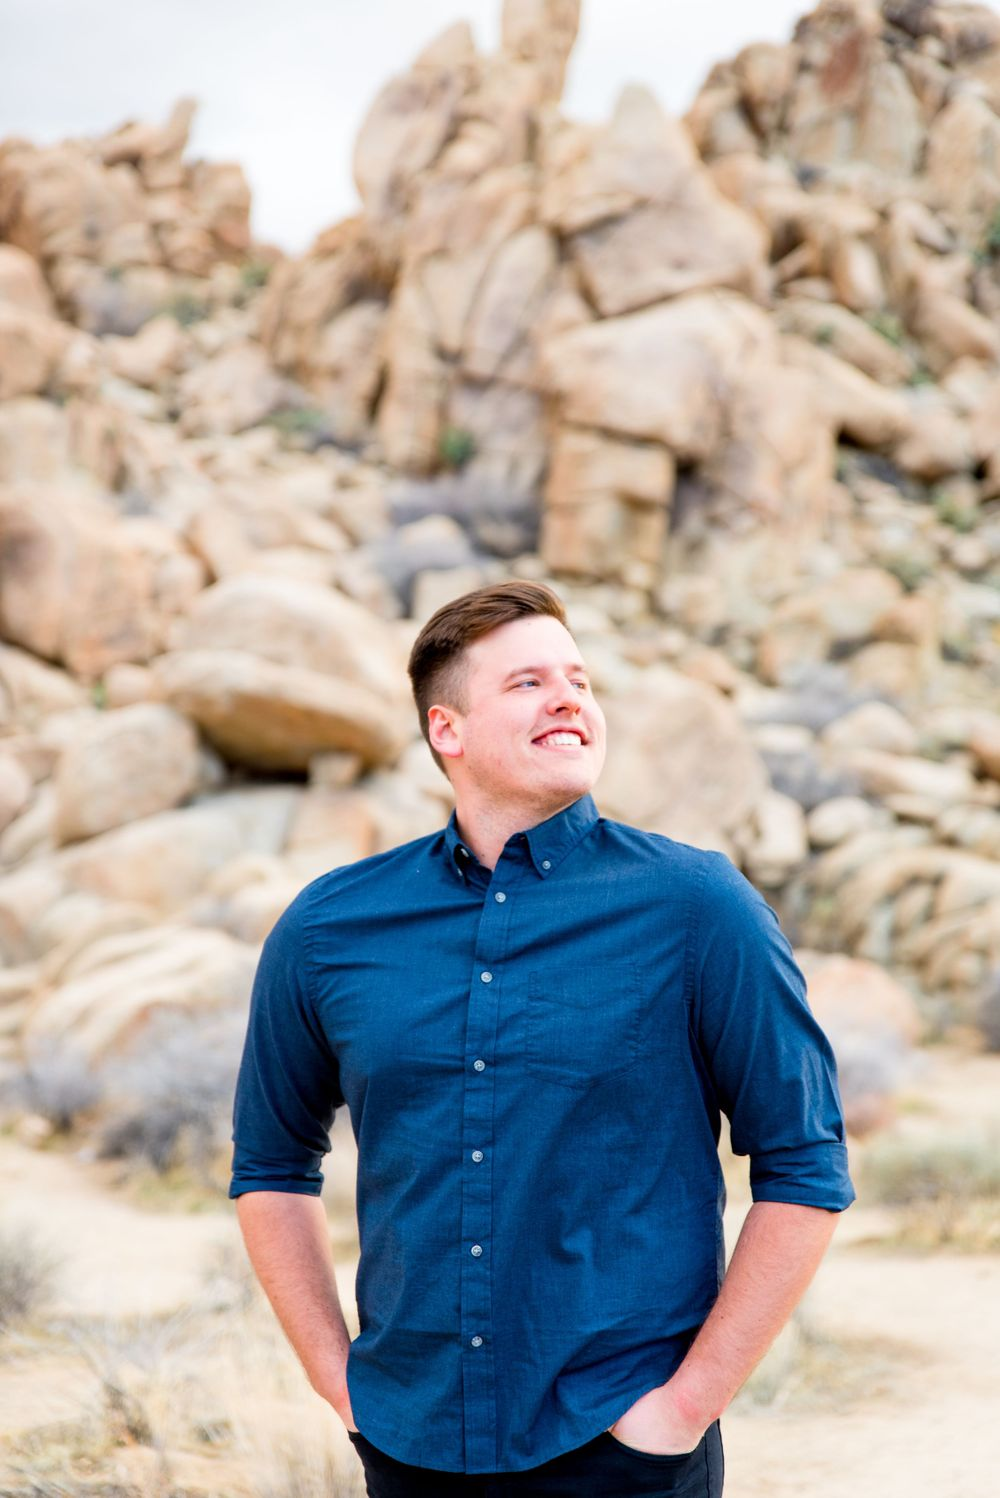 man in blue button down shirt looks to the right and smiles in front of rocks at Joshua Tree National Park